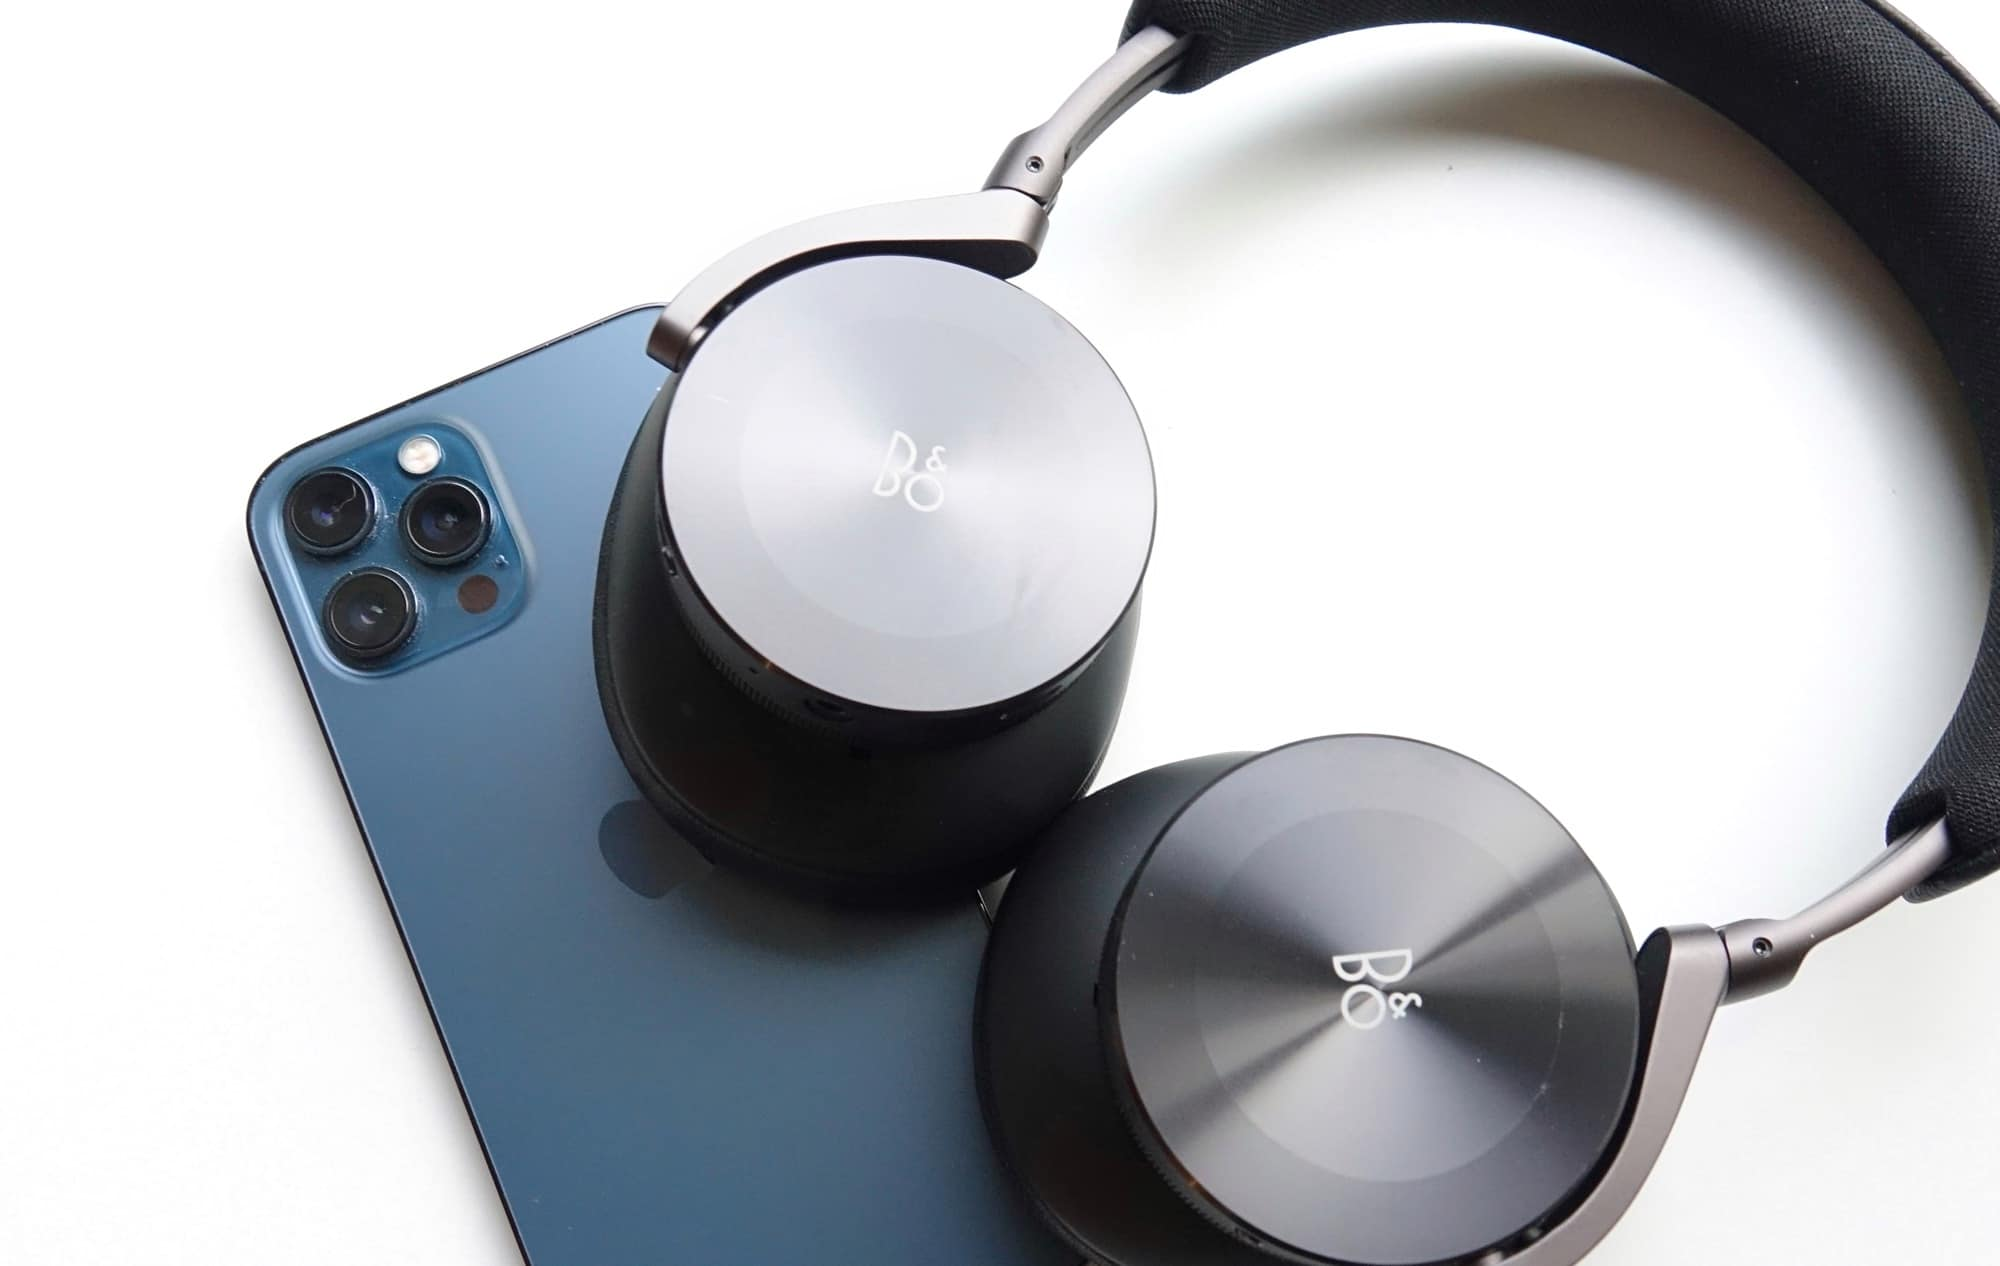 Beoplay H95 reviewed